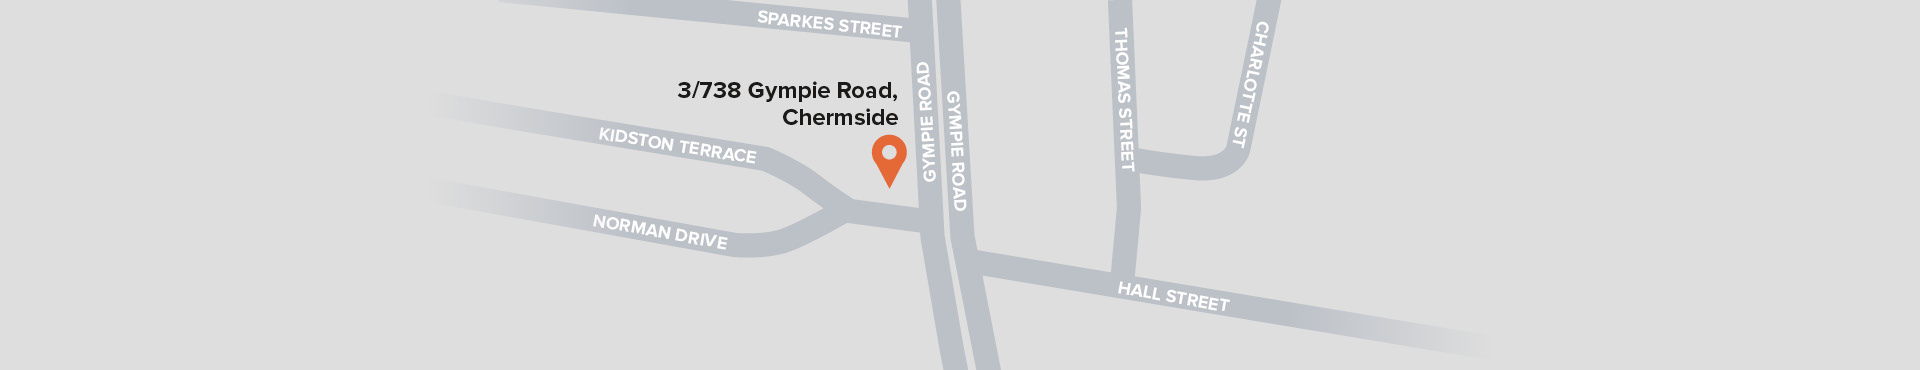 Map of Chermside branch | Shine Lawyers